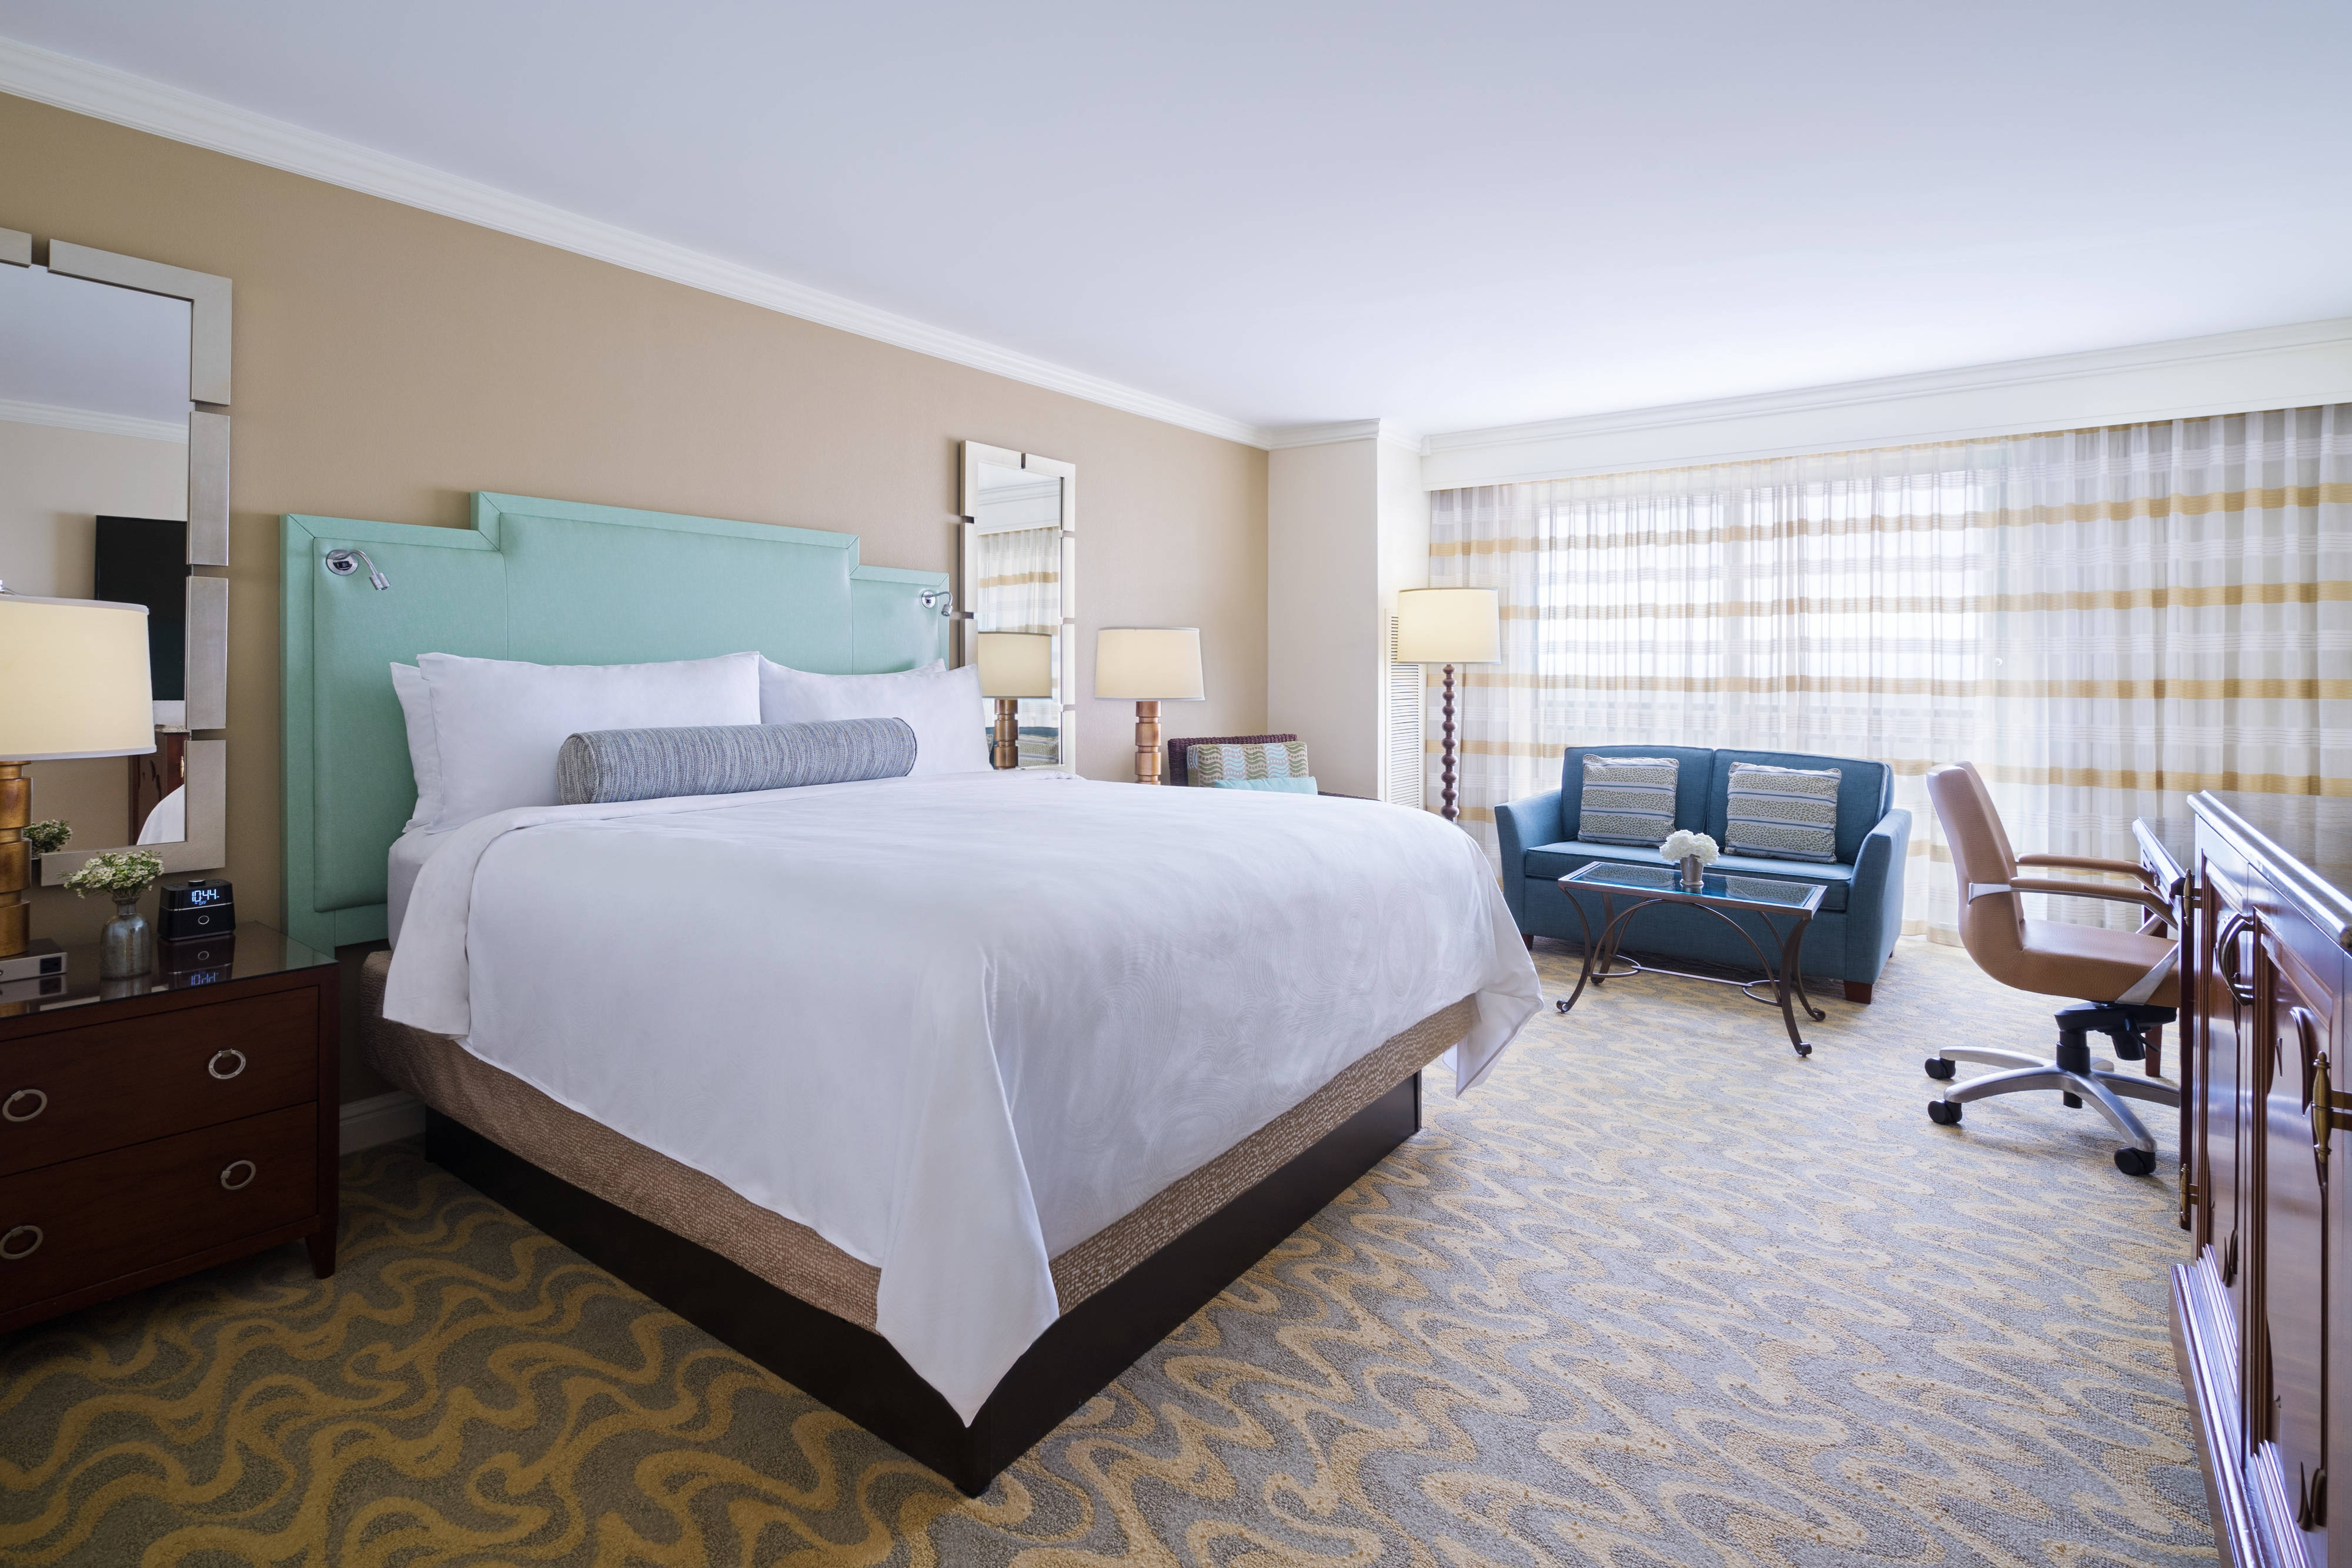 luxury hotel in orlando florida resort jw marriott orlando